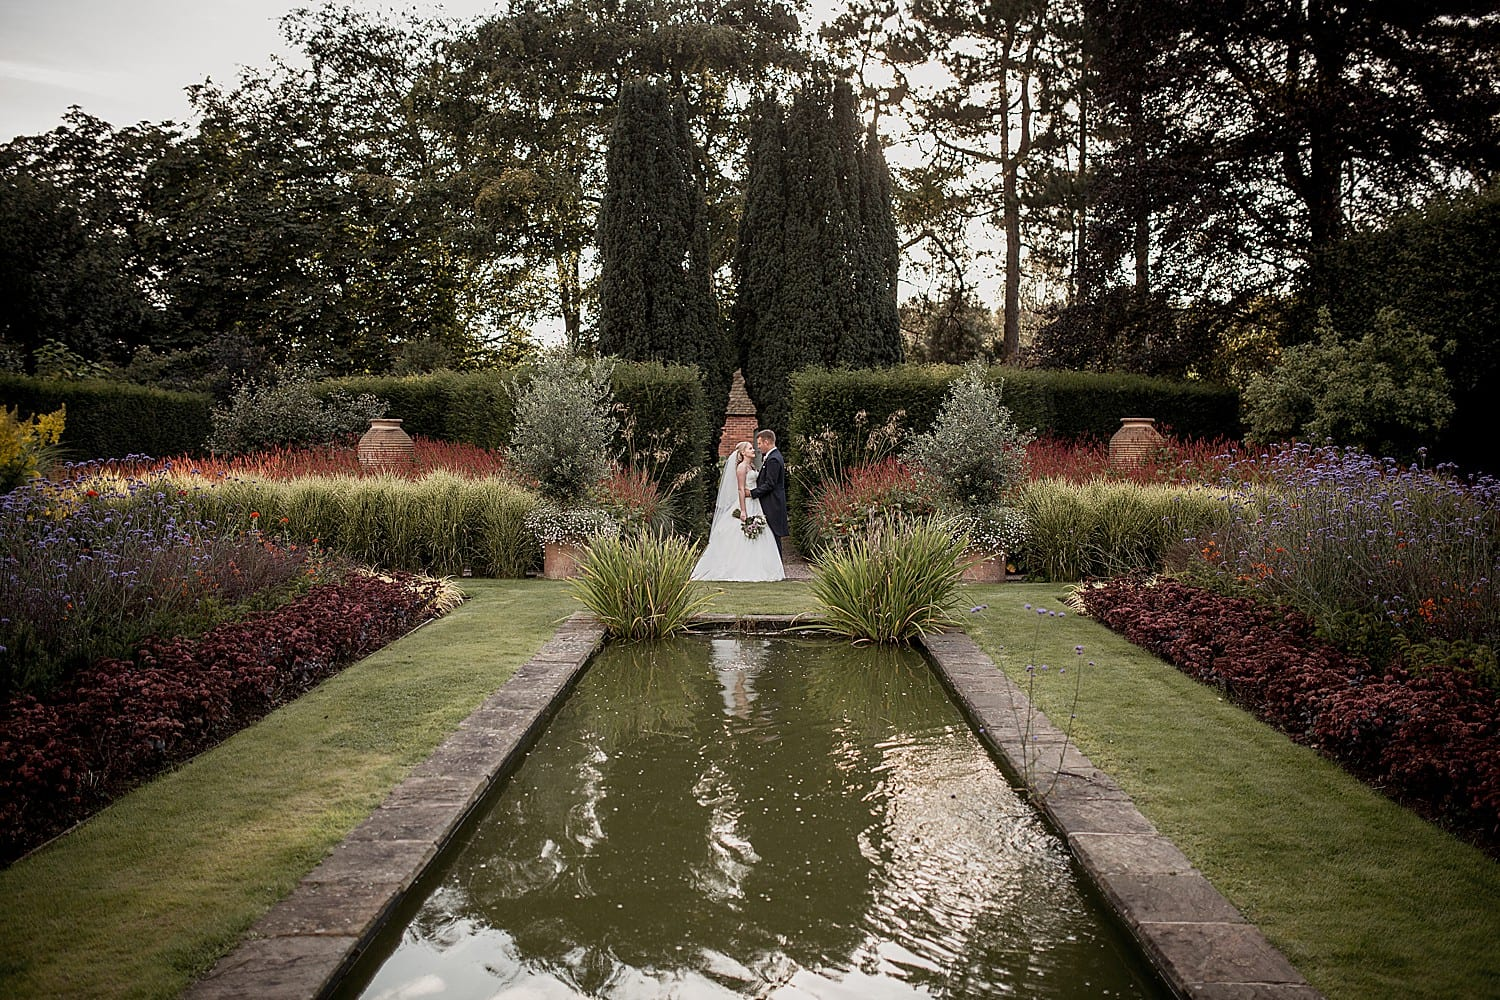 bride and groom near the pond in abbeywood estate gardens